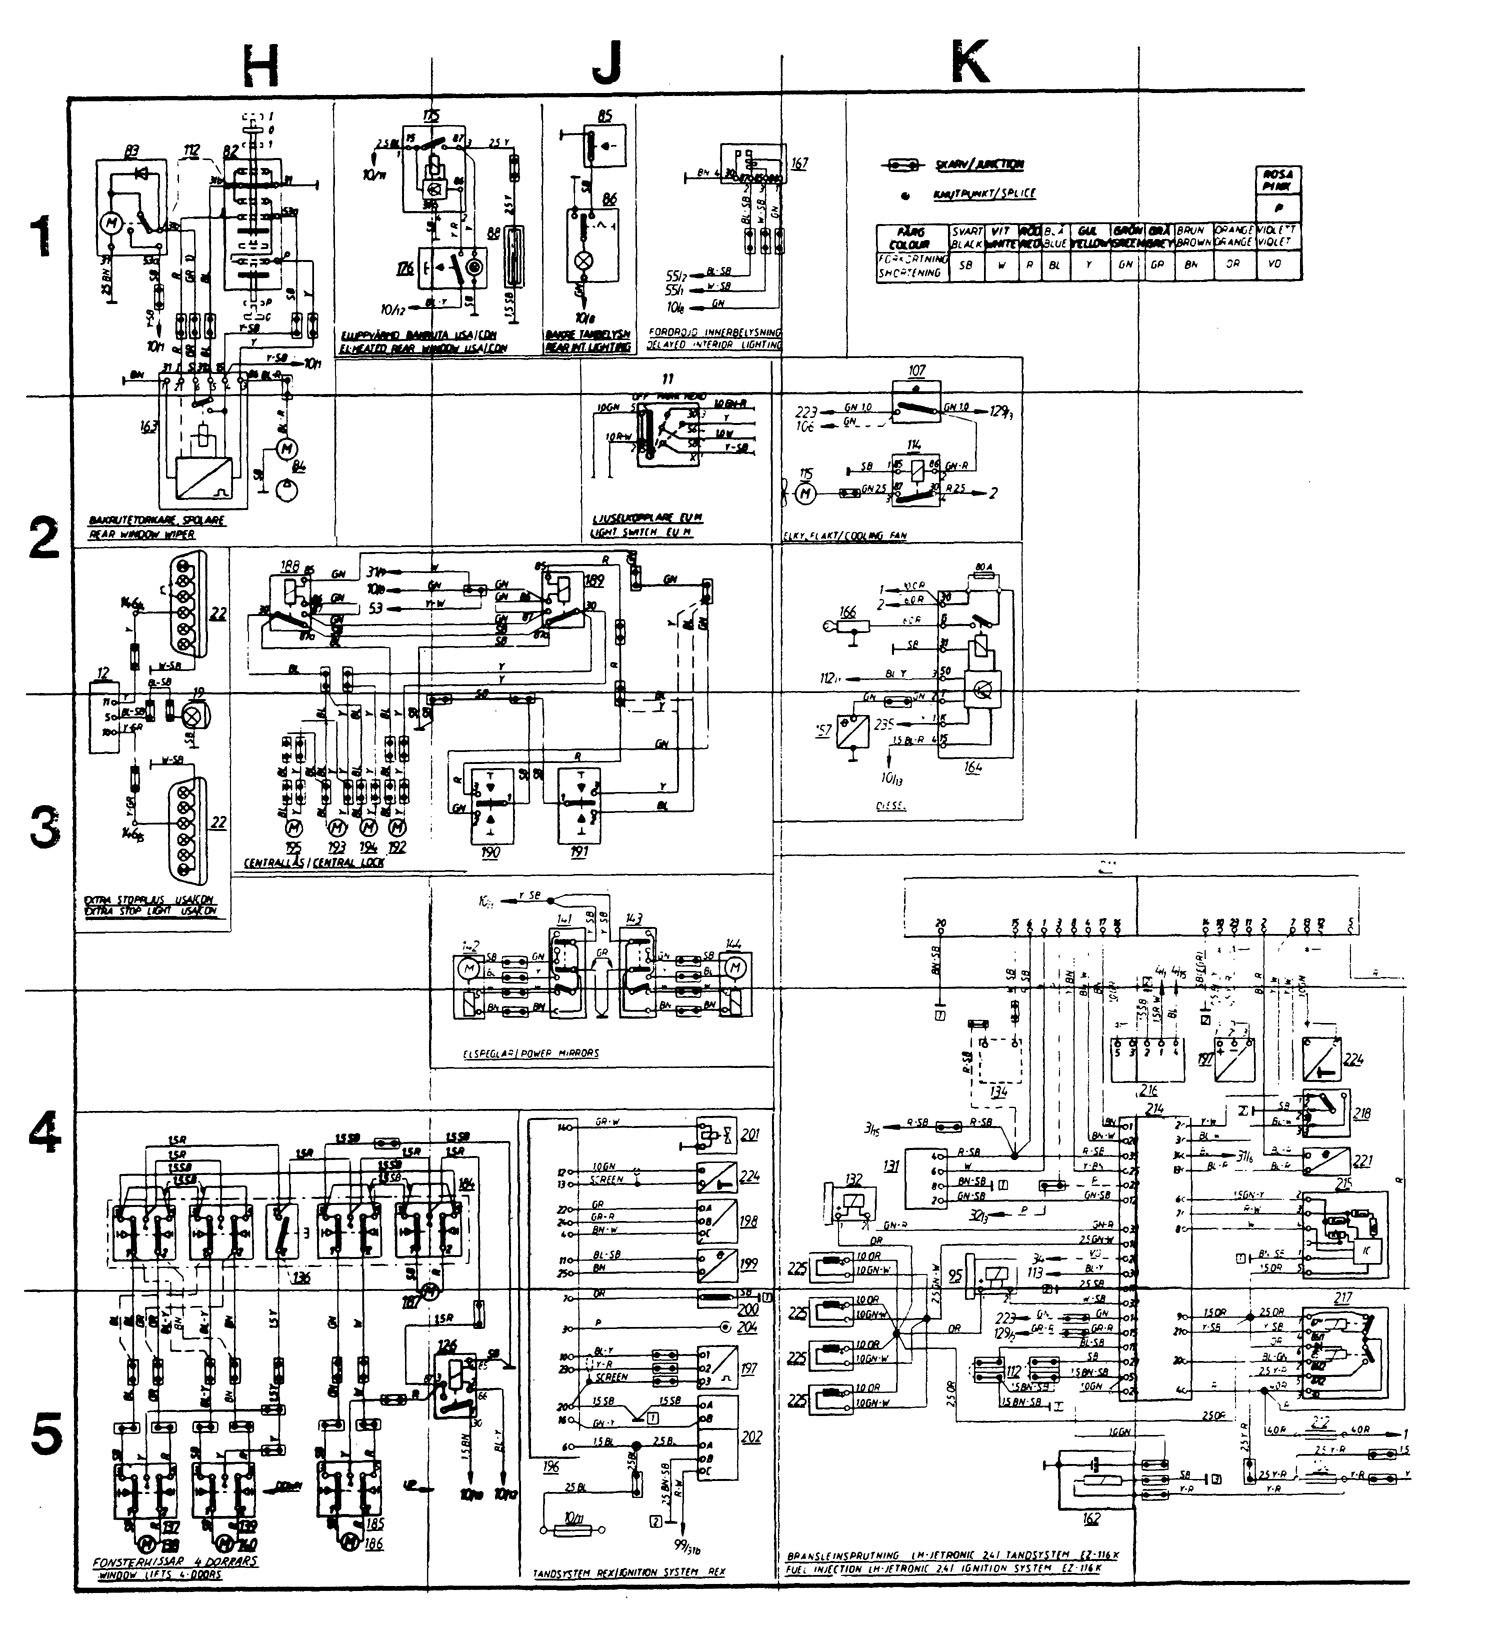 2003 isuzu axiom fuse diagram